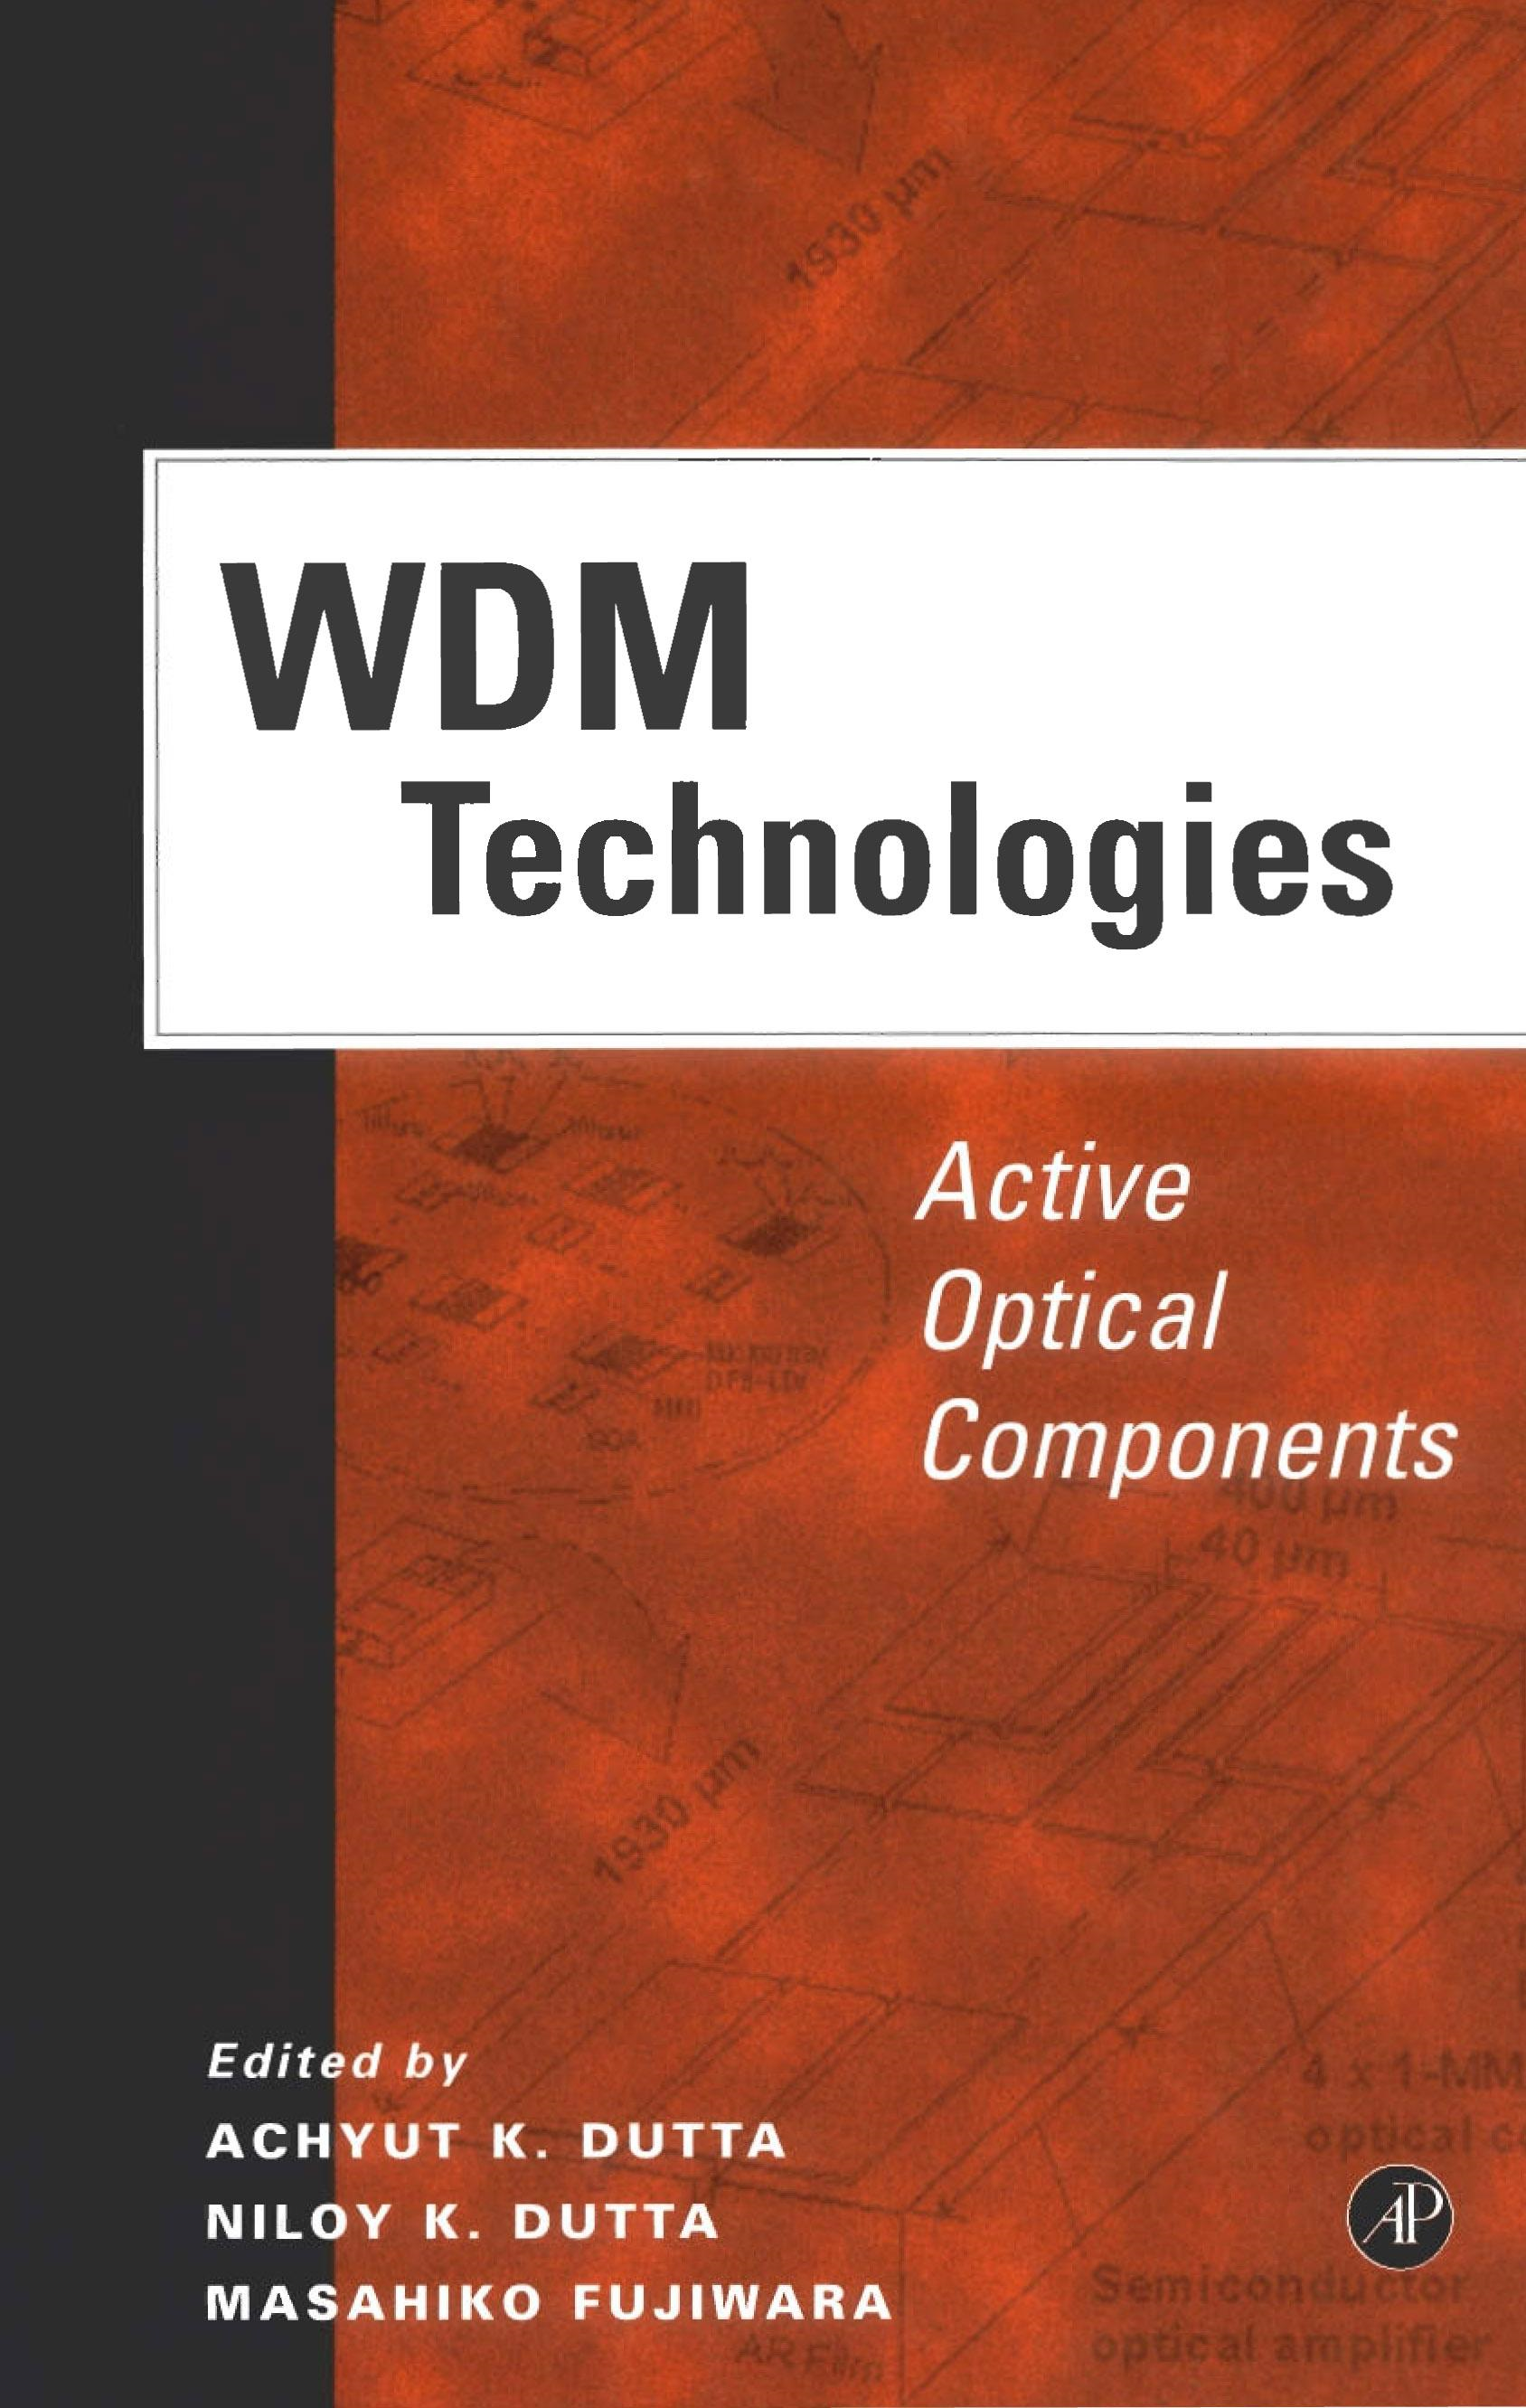 WDM Technologies: Active Optical Components: Active Optical Components